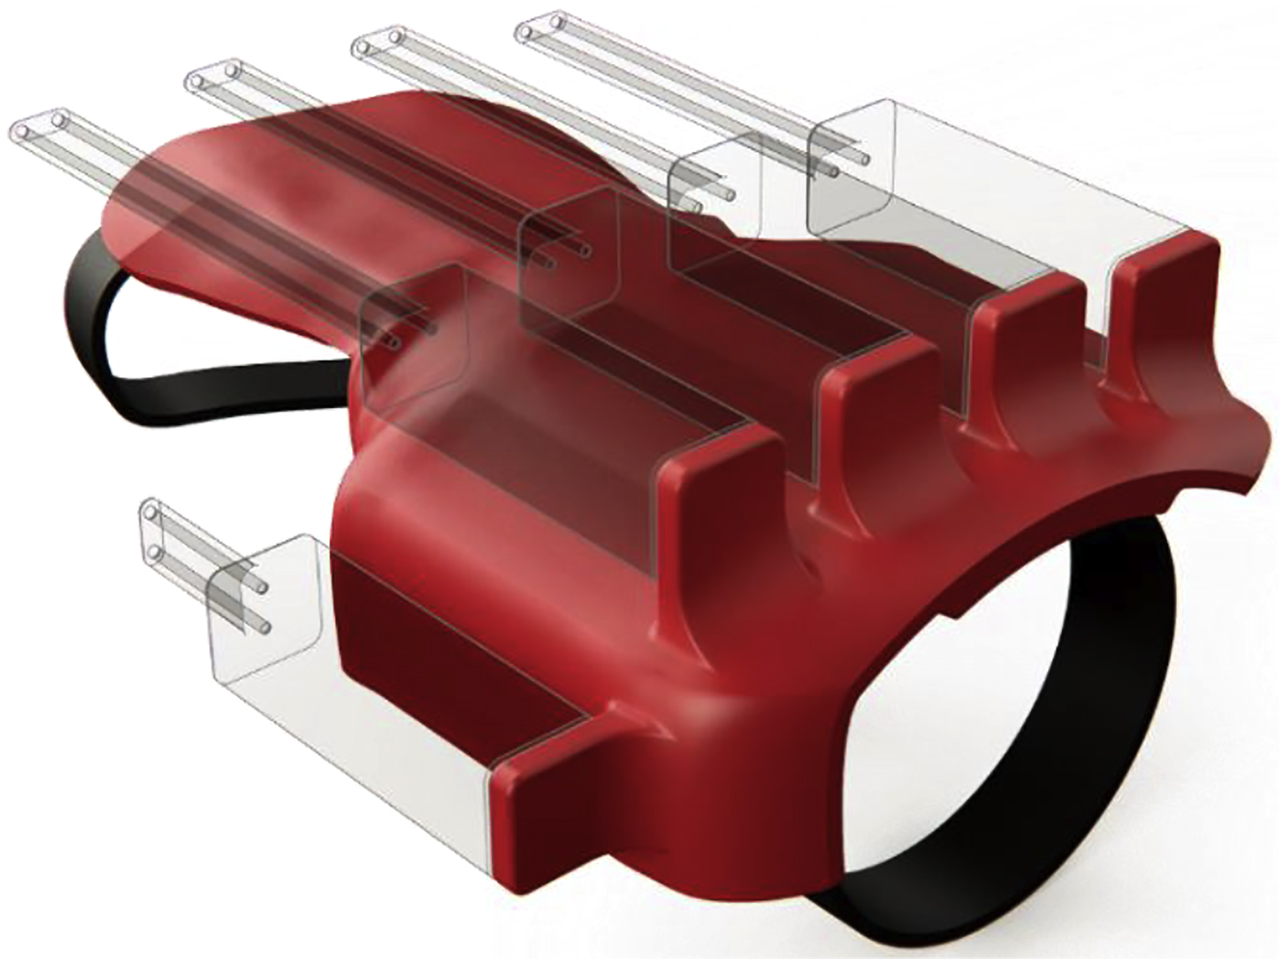 Figure 5: The arm structure that supports the actuators. Motors and cables are represented with transparent bodies.